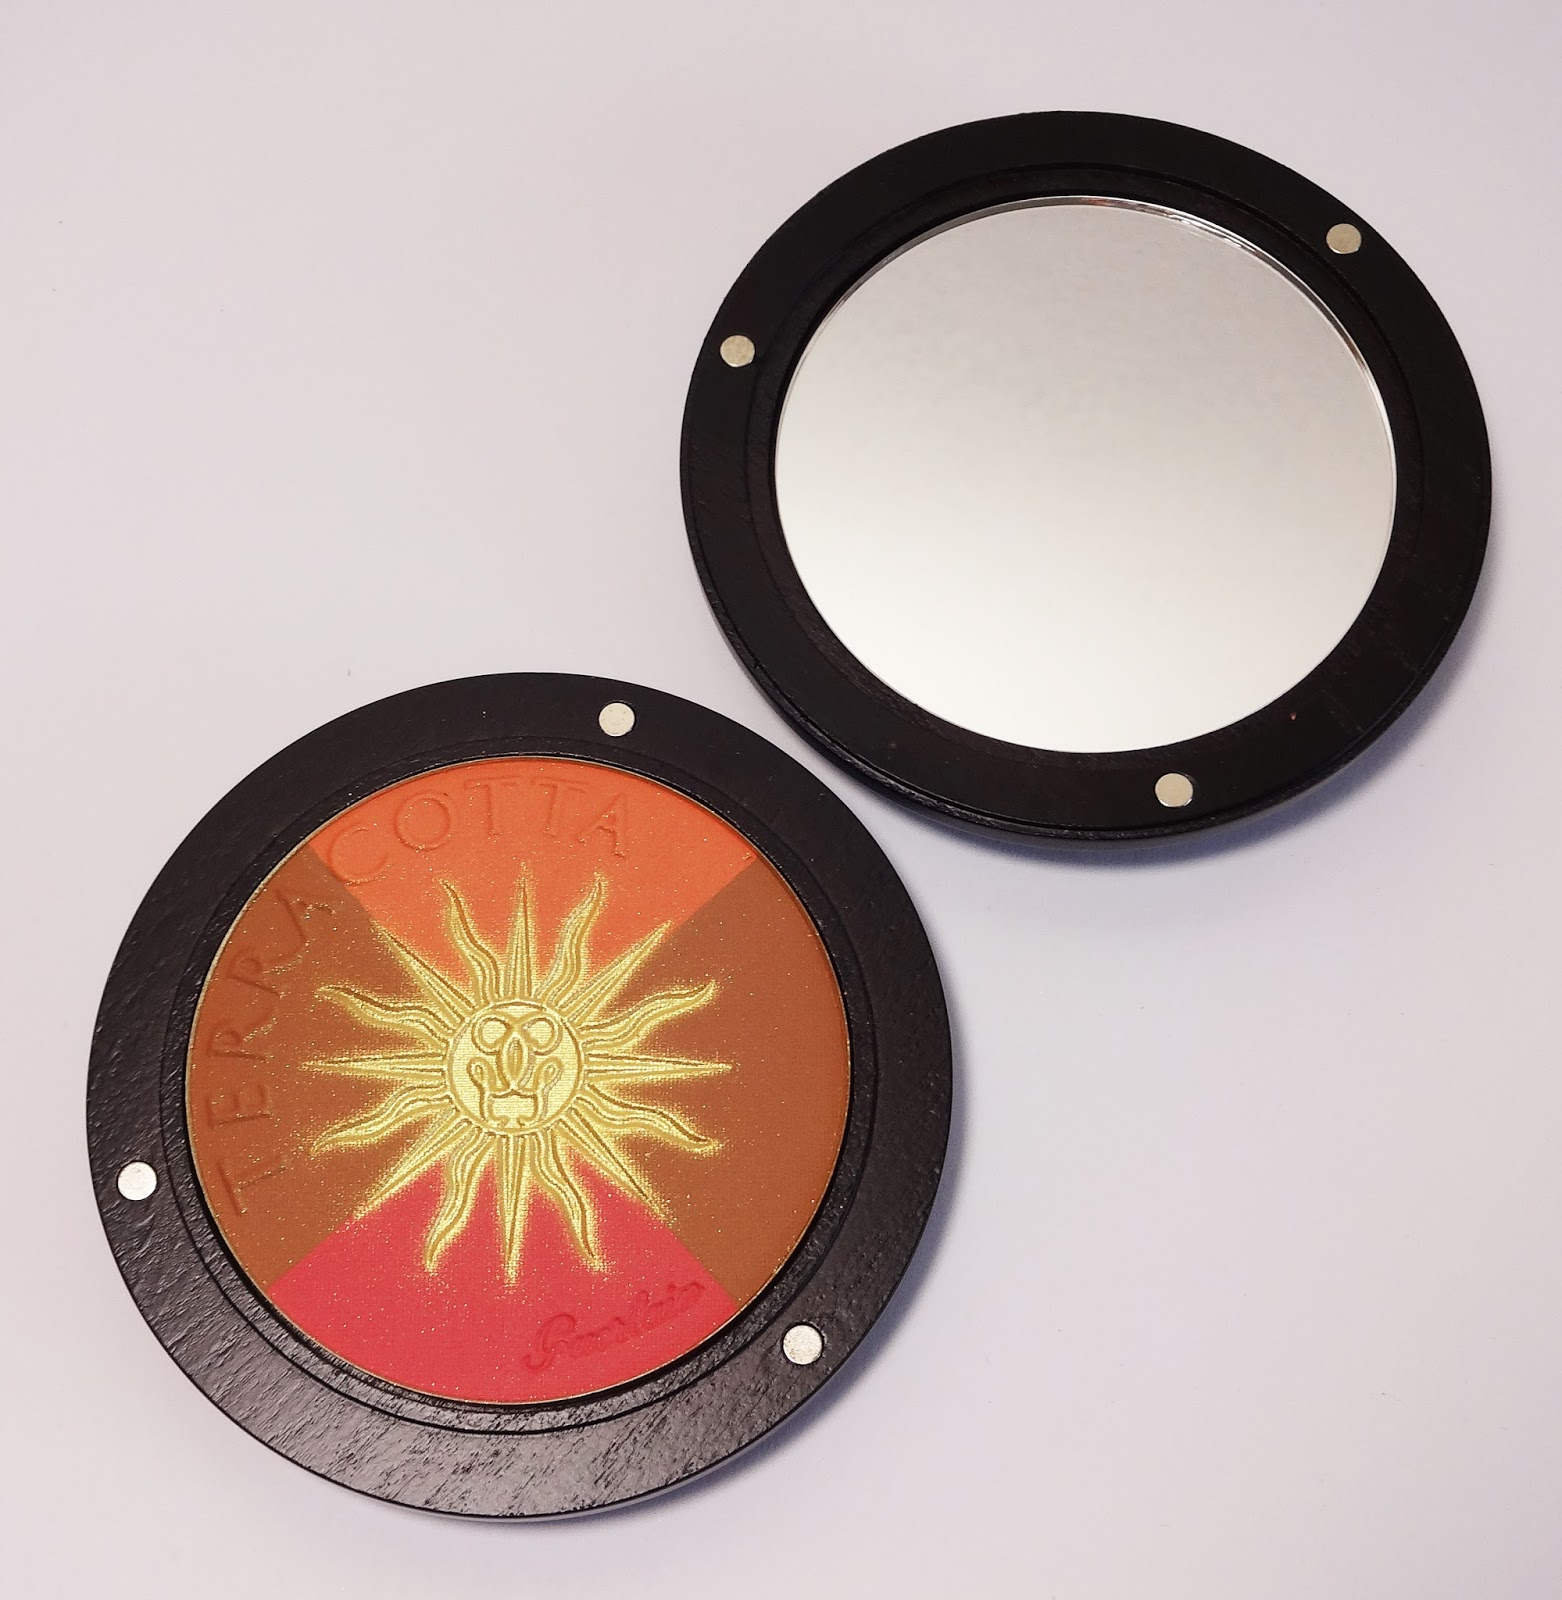 Guerlain - Terracotta Sun Celebration Bronzing Powder & Blush